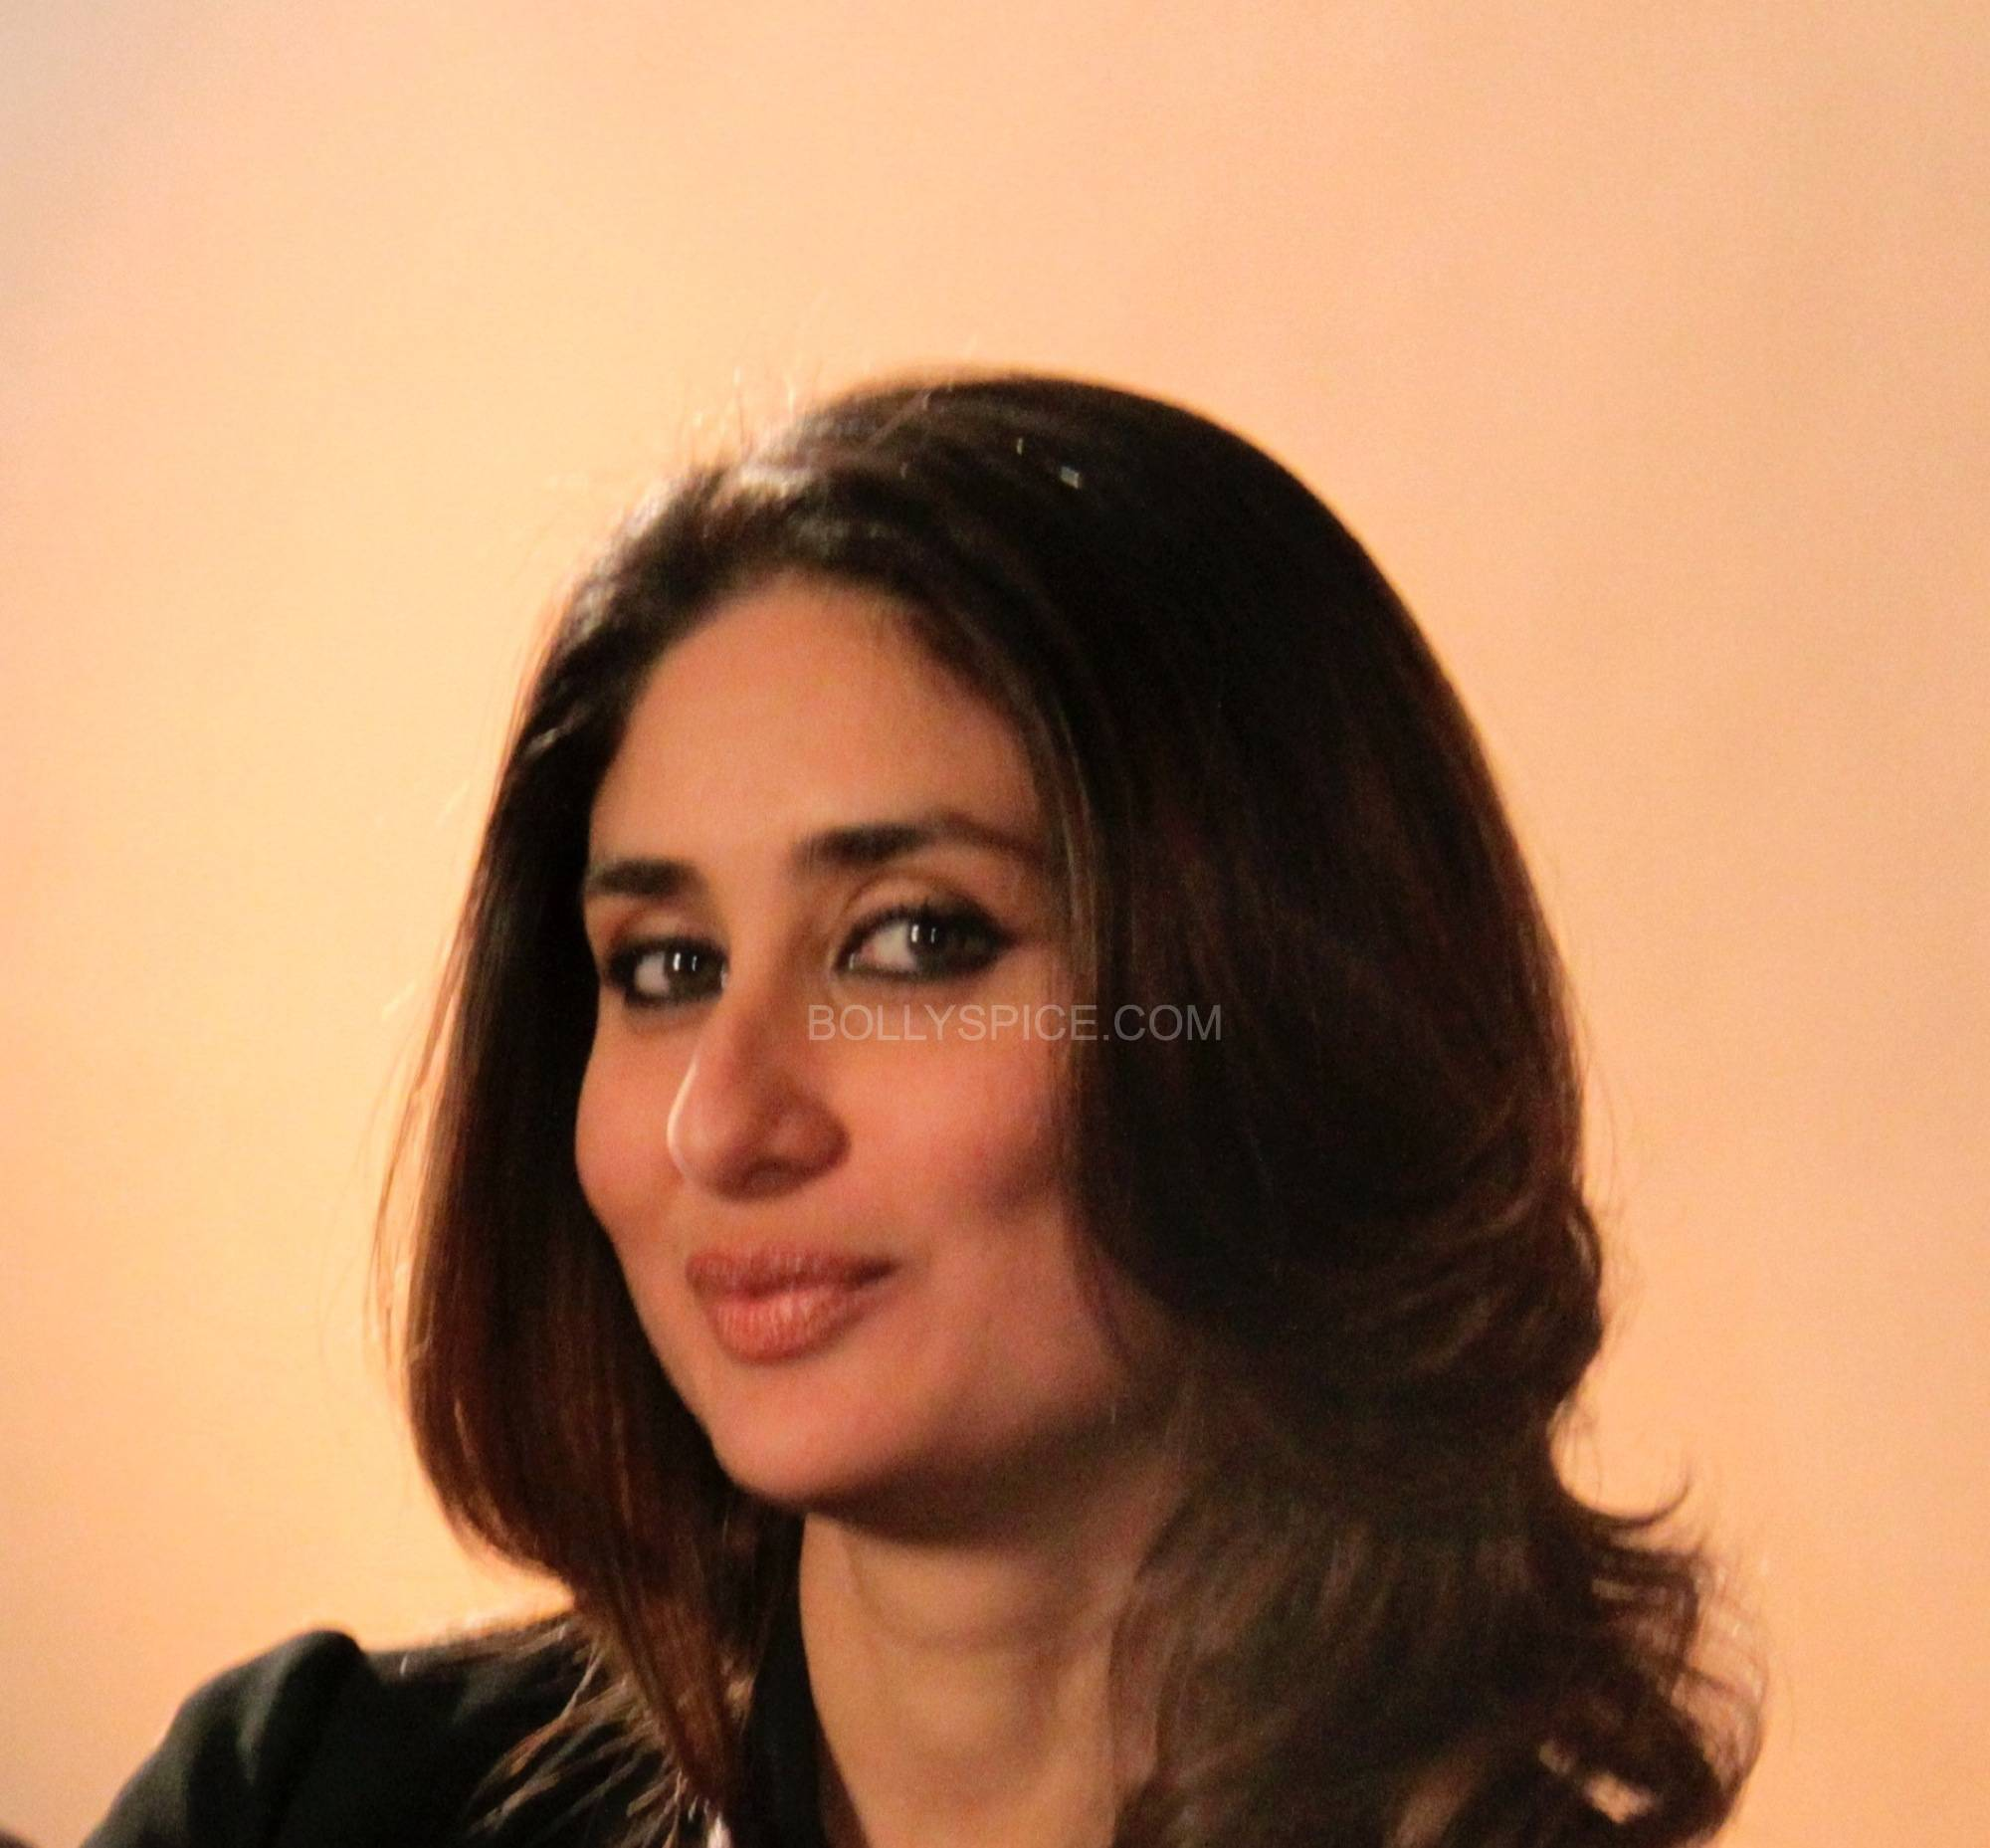 imrankareenagtpmlondon5